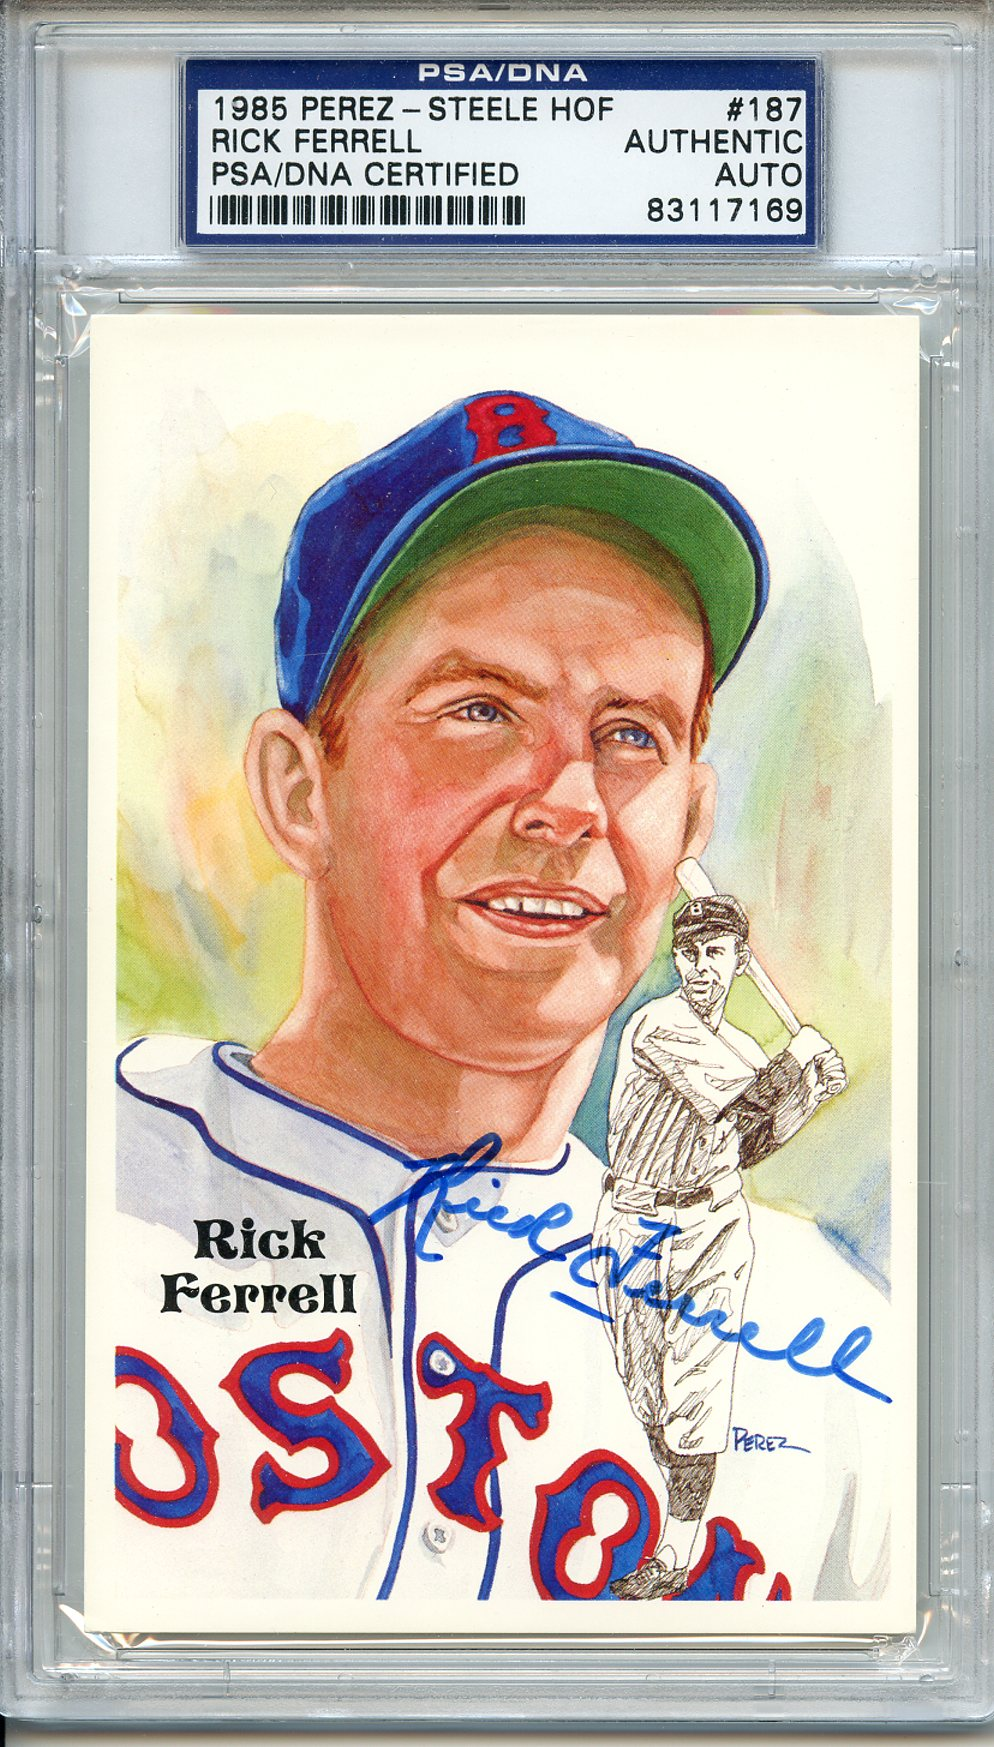 1985 Rick Ferrell Signed HOF Perez-steele Browns Red Sox Senator